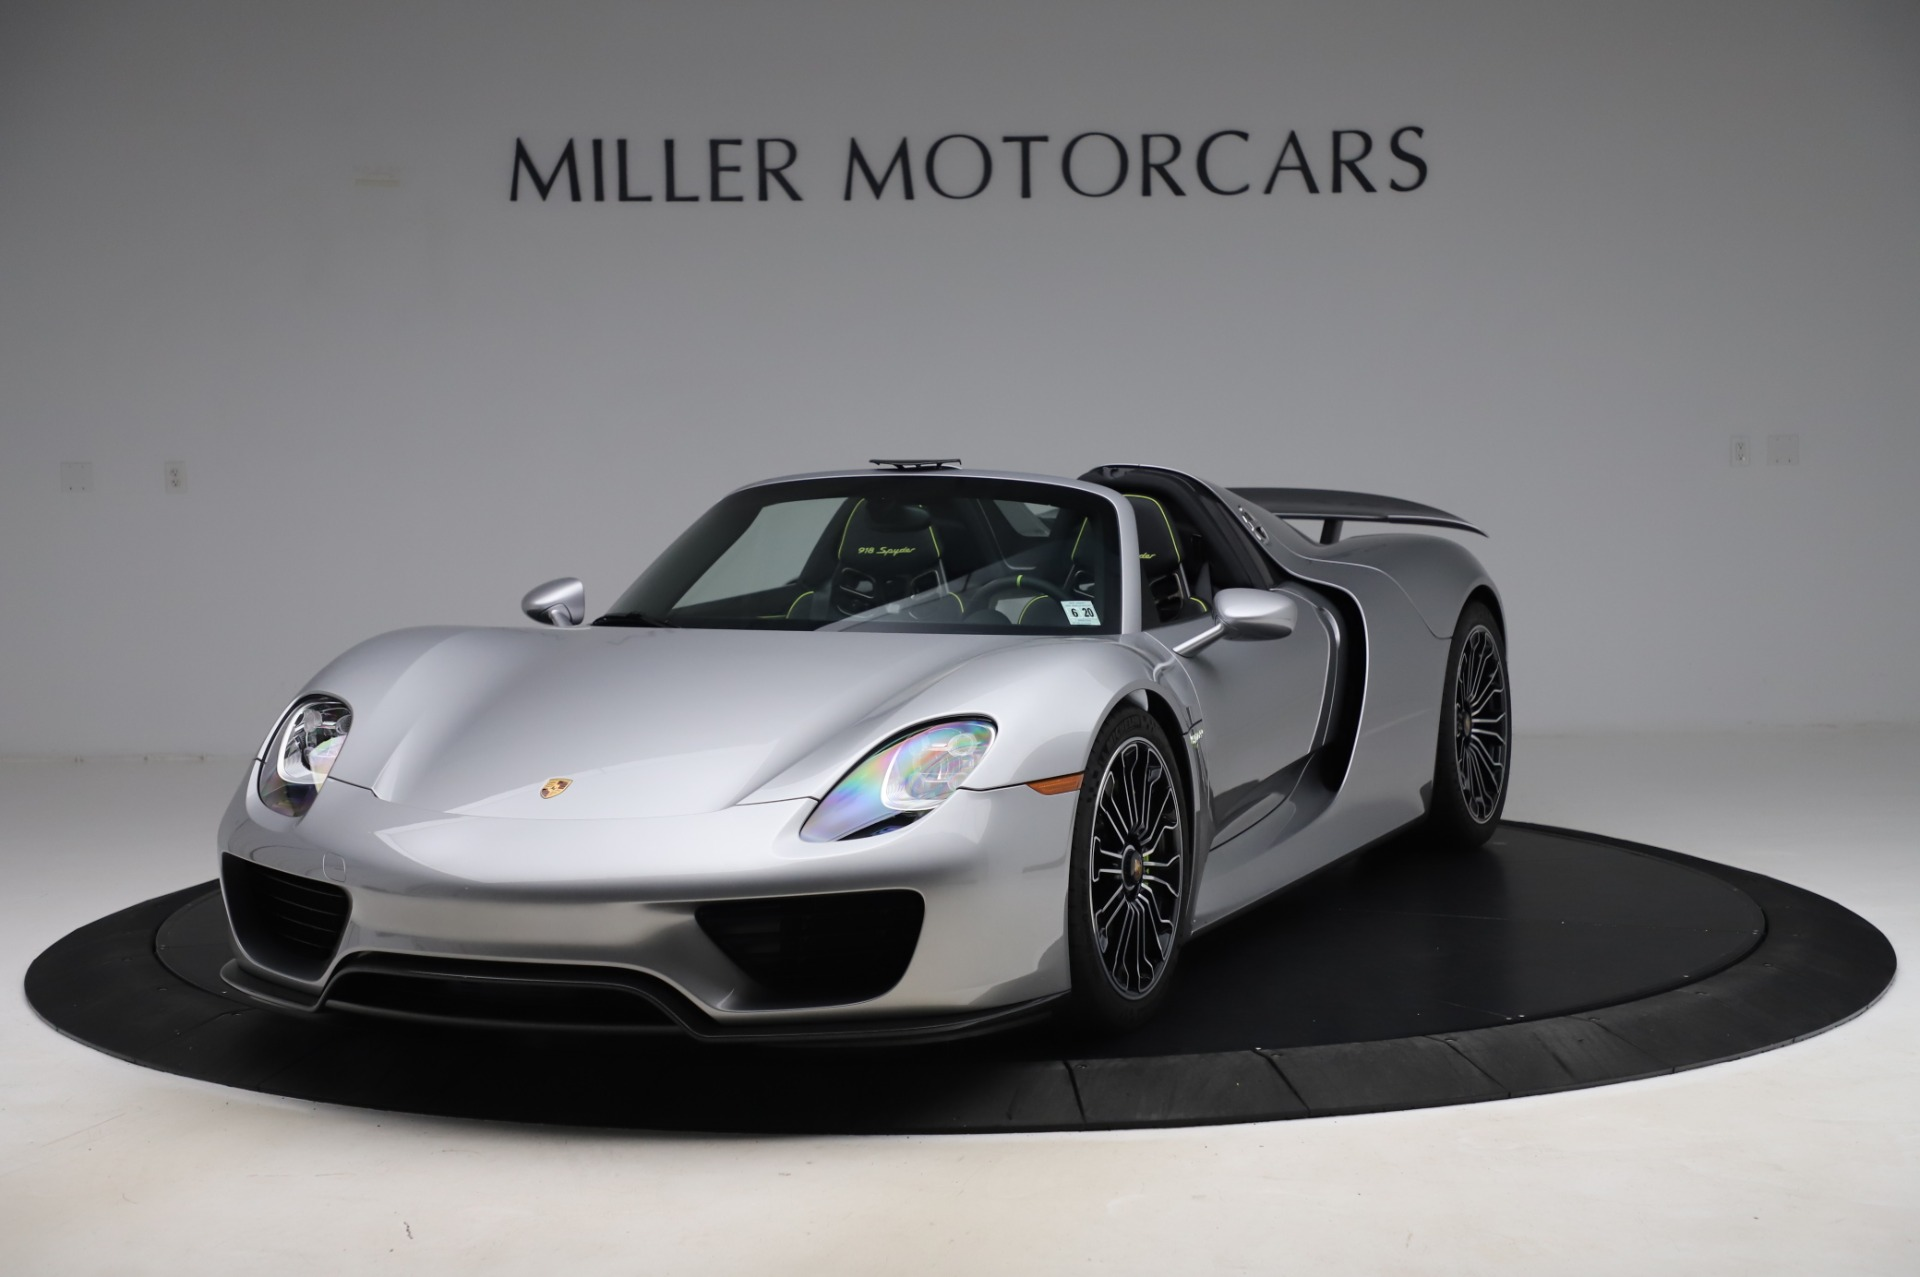 Used 2015 Porsche 918 Spyder for sale $1,355,900 at McLaren Greenwich in Greenwich CT 06830 1